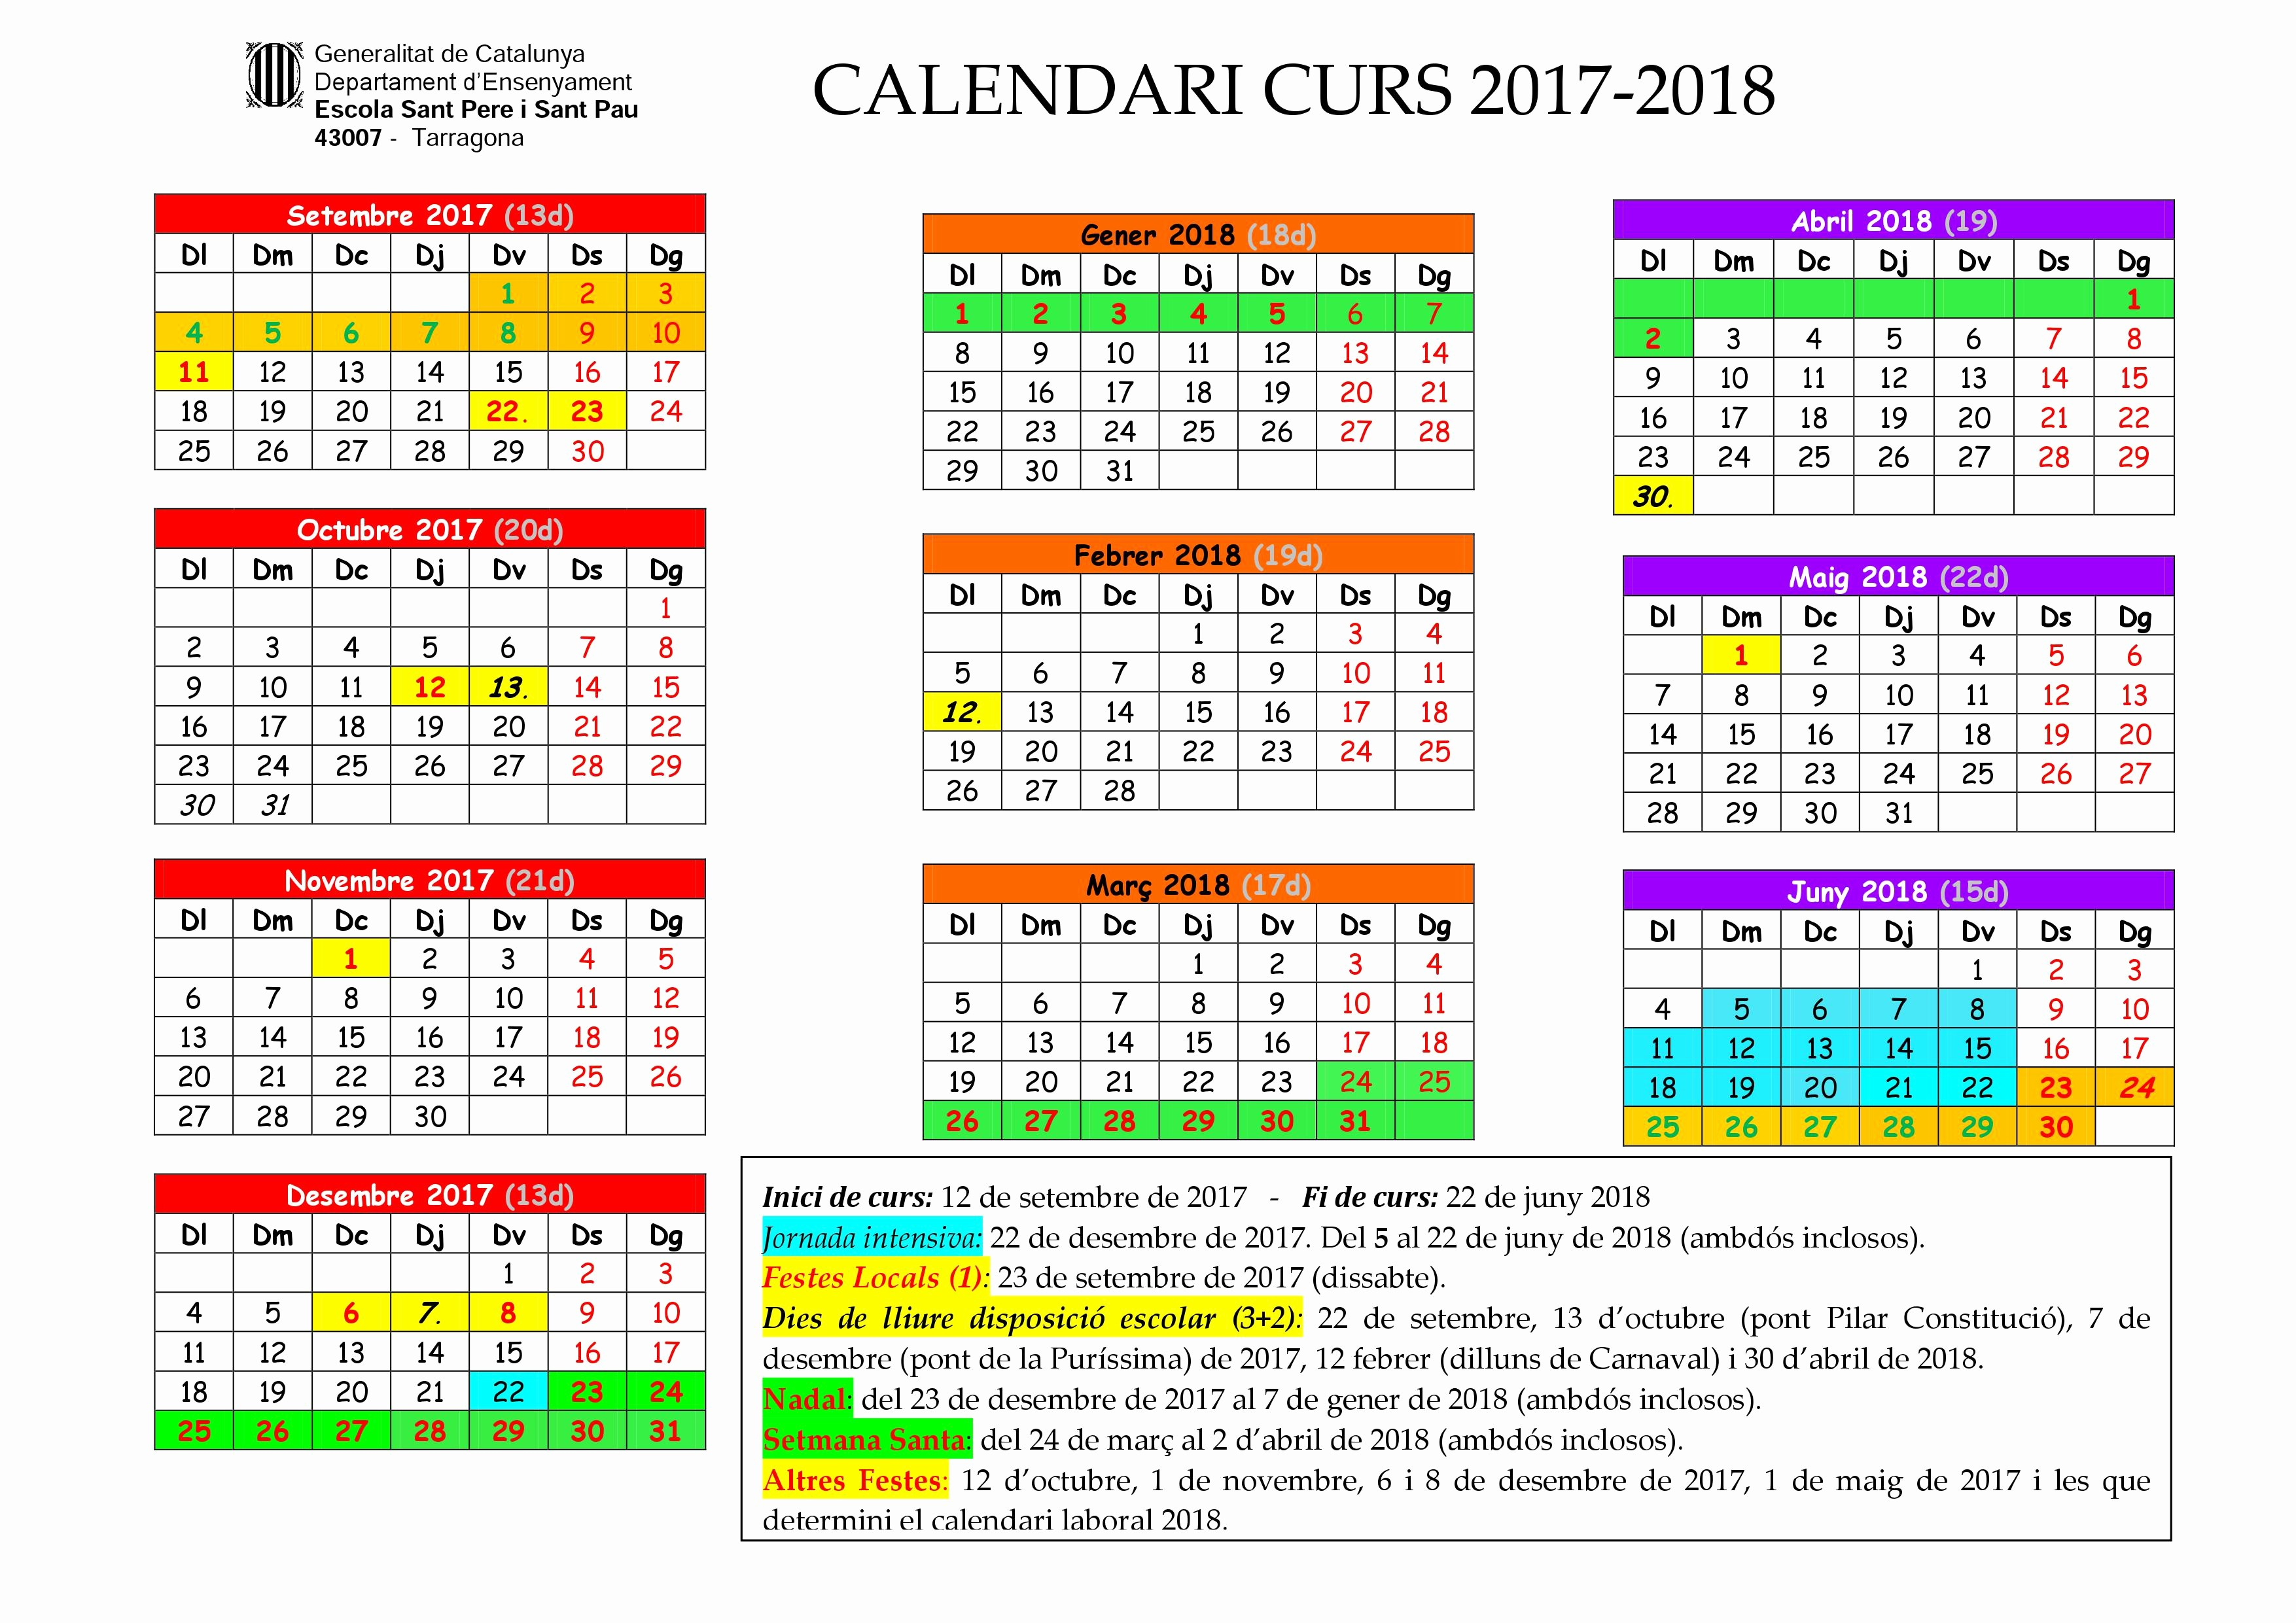 Calendario Laboral 2019 Catalunya Gencat Más Reciente Calendari Upf 2019 Calendario 2019 Marbaro Kalentri 2018 Of Calendario Laboral 2019 Catalunya Gencat Más Caliente 04 11 15 Eperiodico Art [pdf Document]